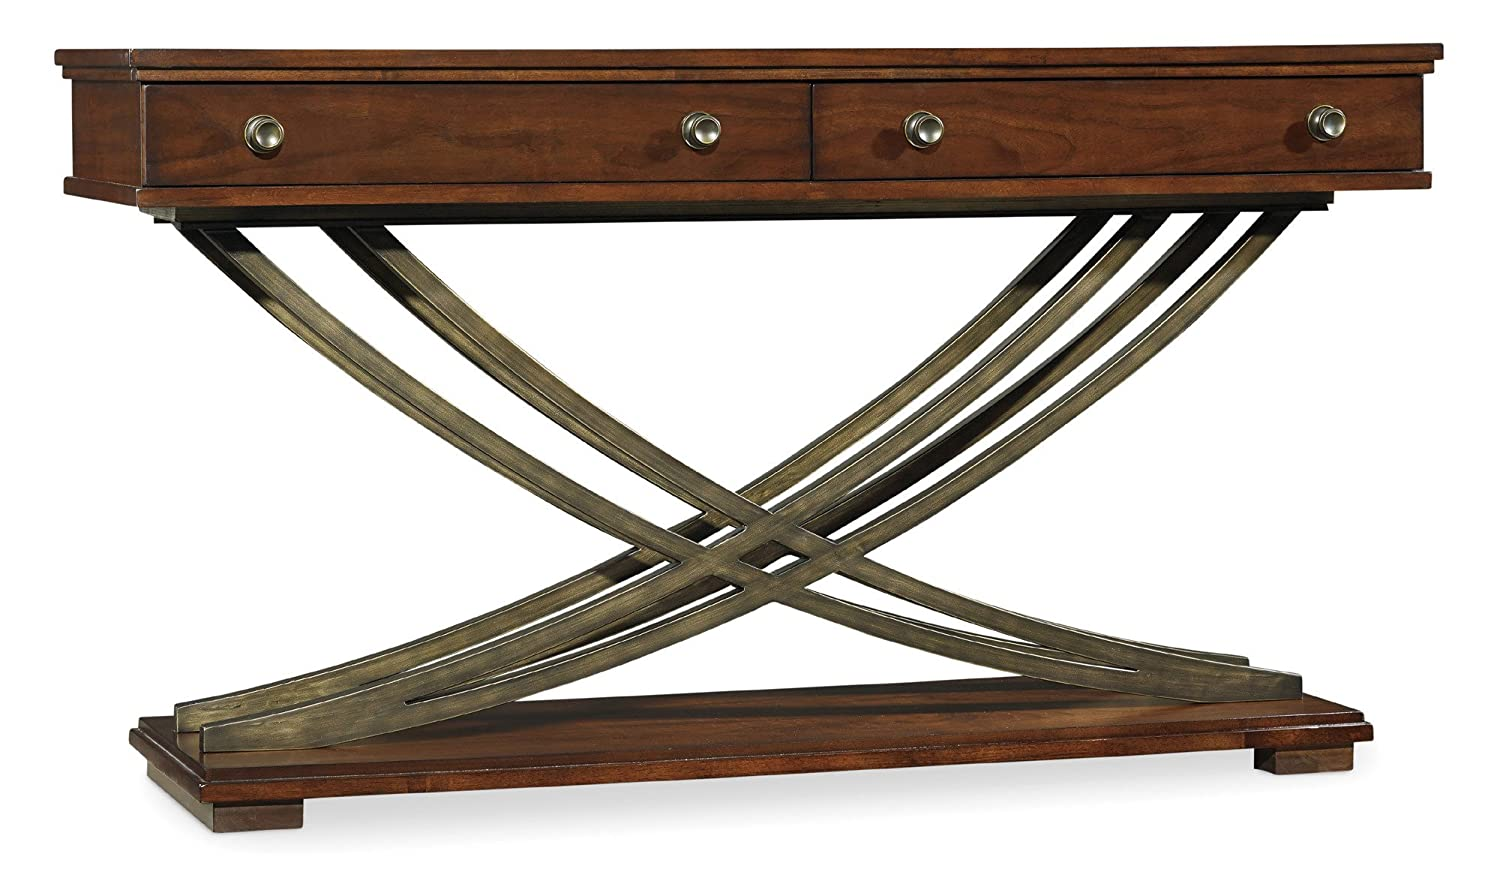 Amazon.com: Hooker Furniture Palisade Cross Base Sofa Table In Walnut:  Kitchen U0026 Dining